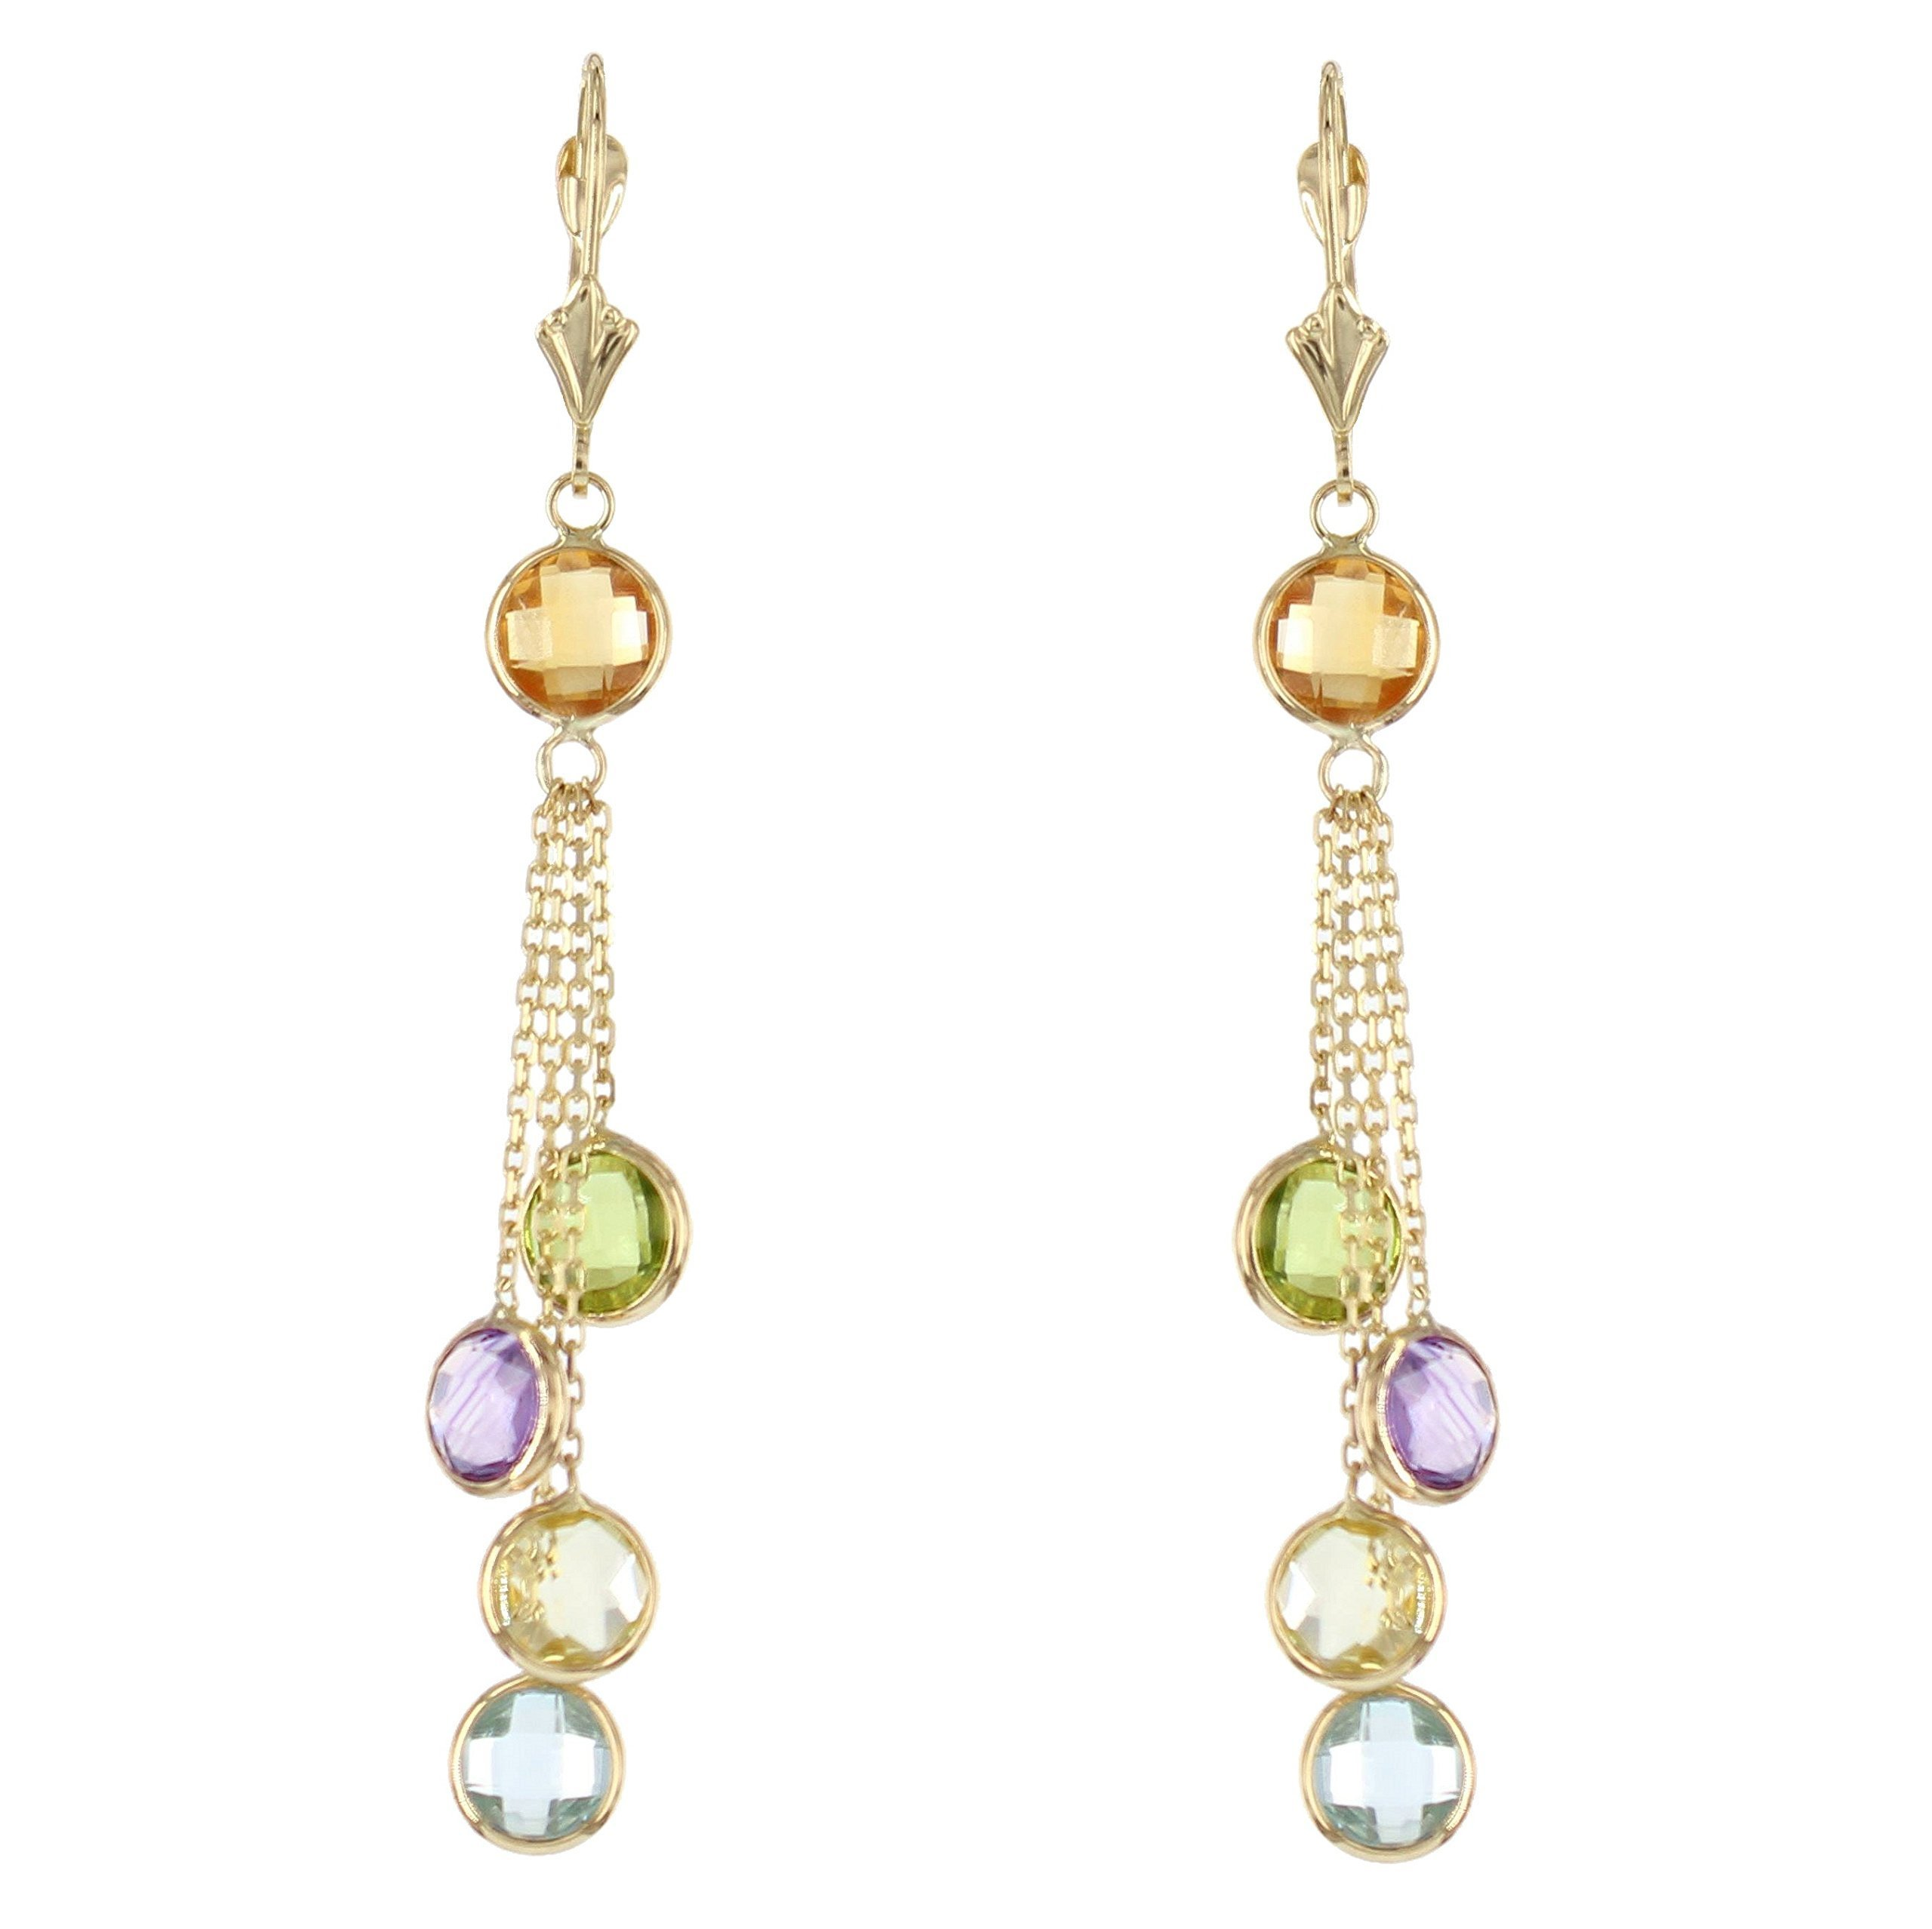 14k Yellow Gold Chandelier Earrings with Round Gemstone Stations